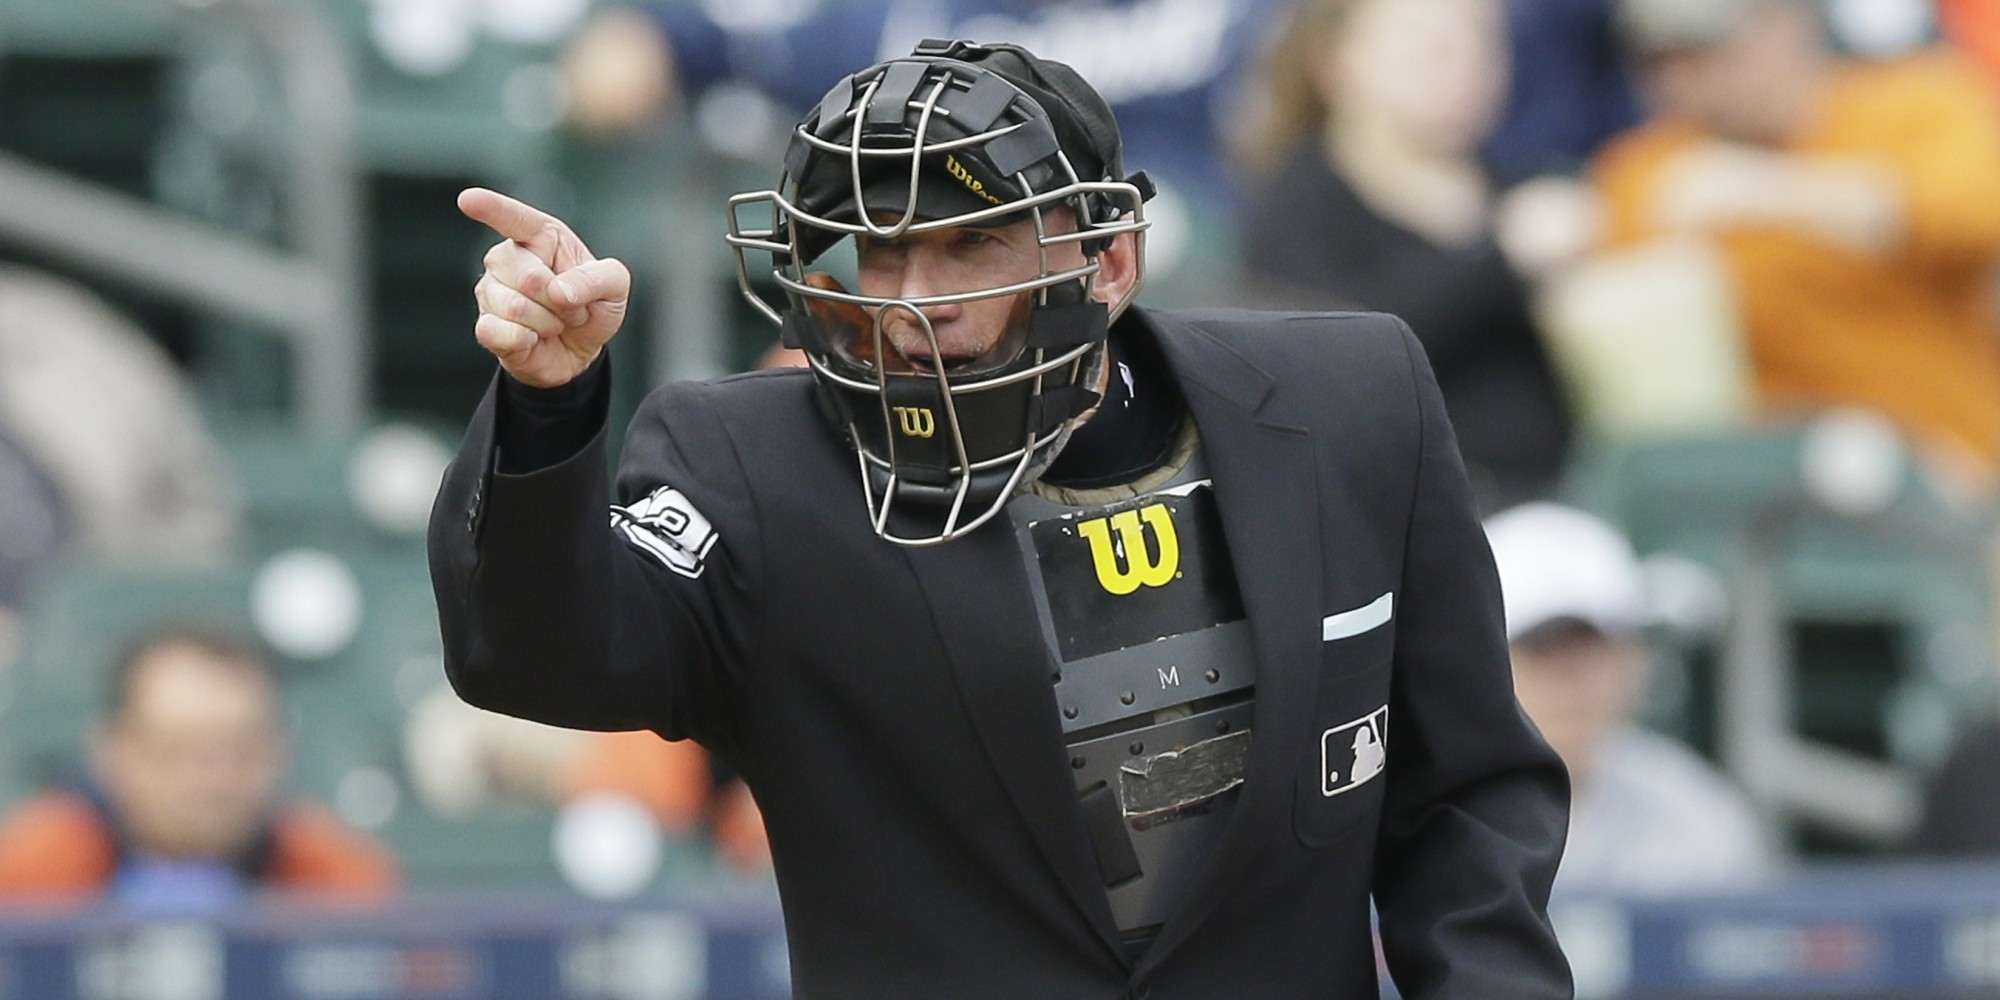 Image result for major league umpire pictures